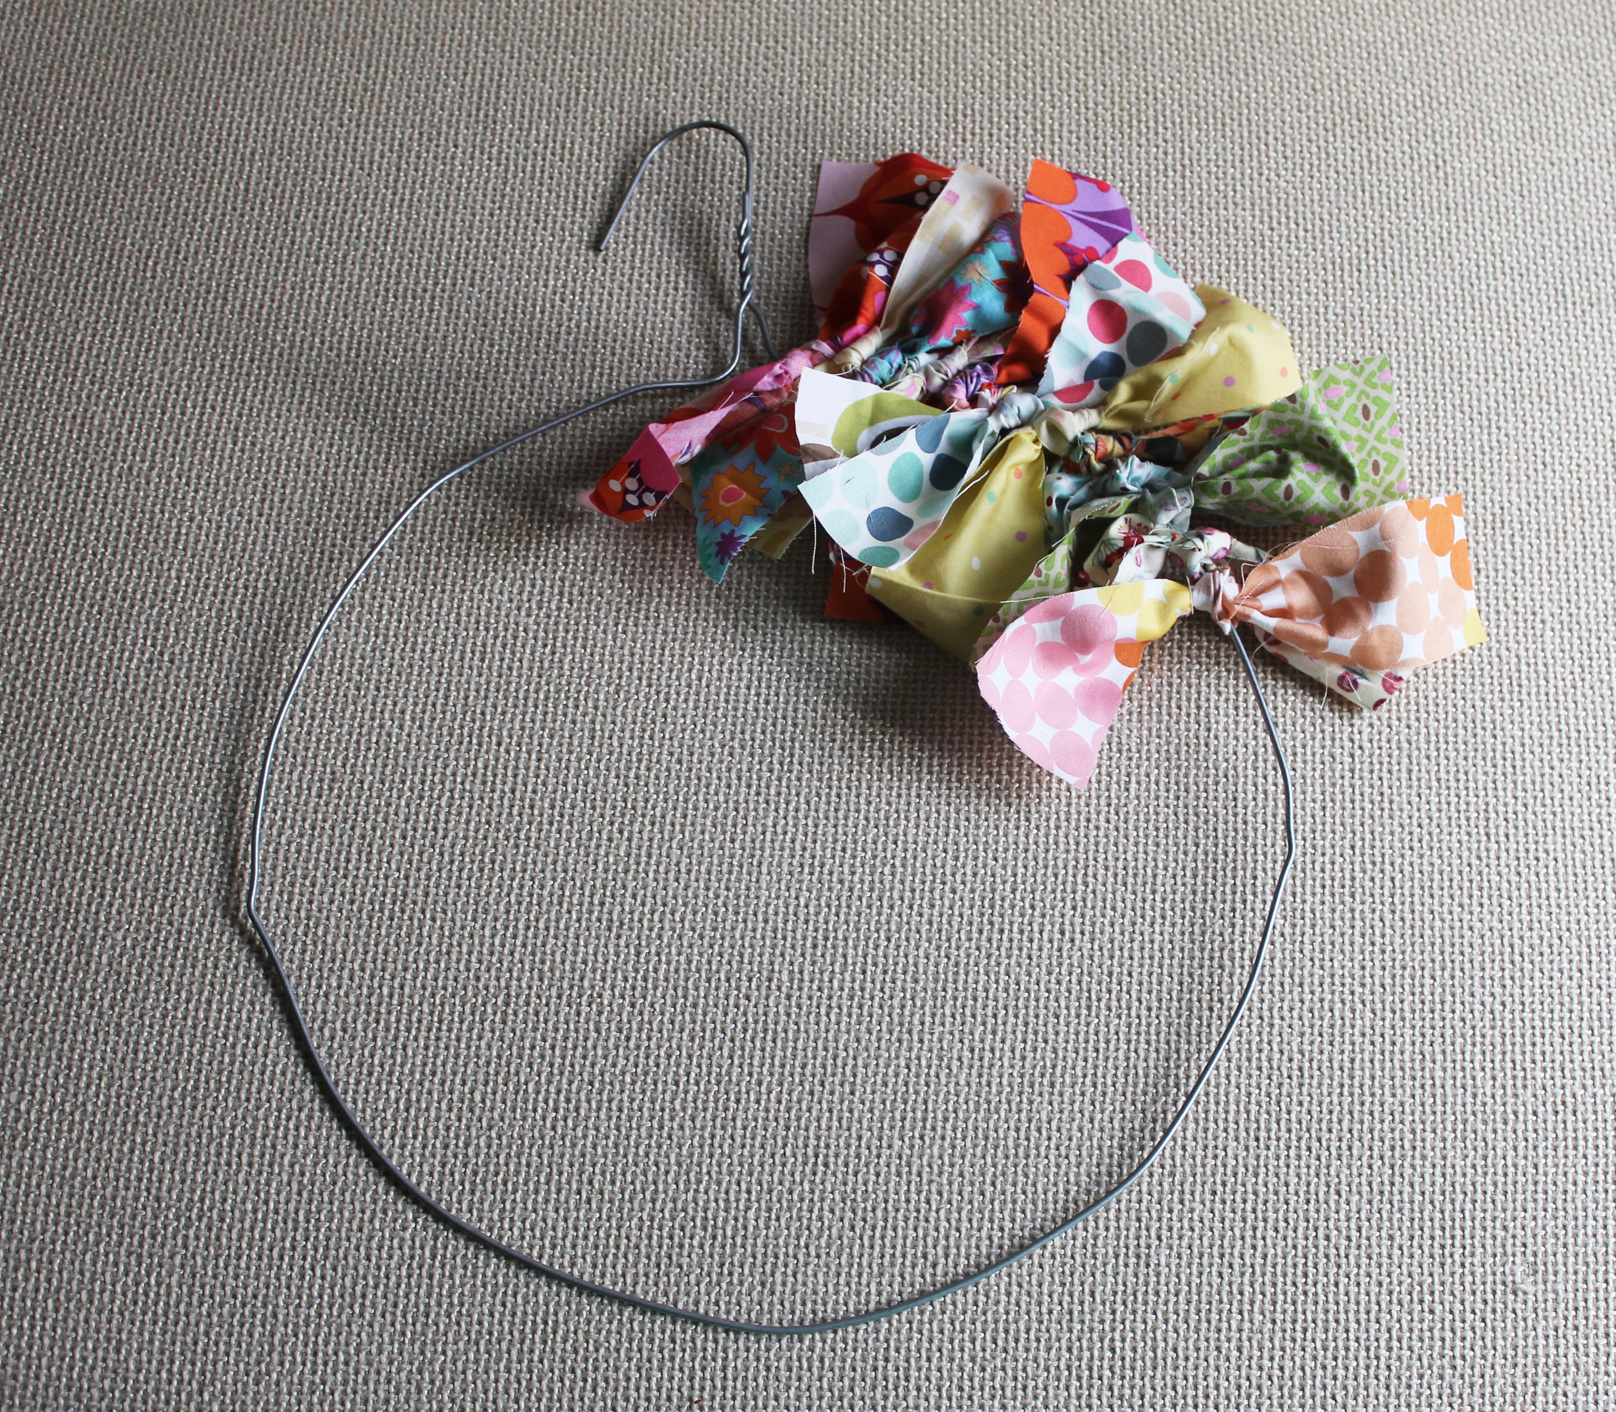 Diy rag wreath Making wreaths